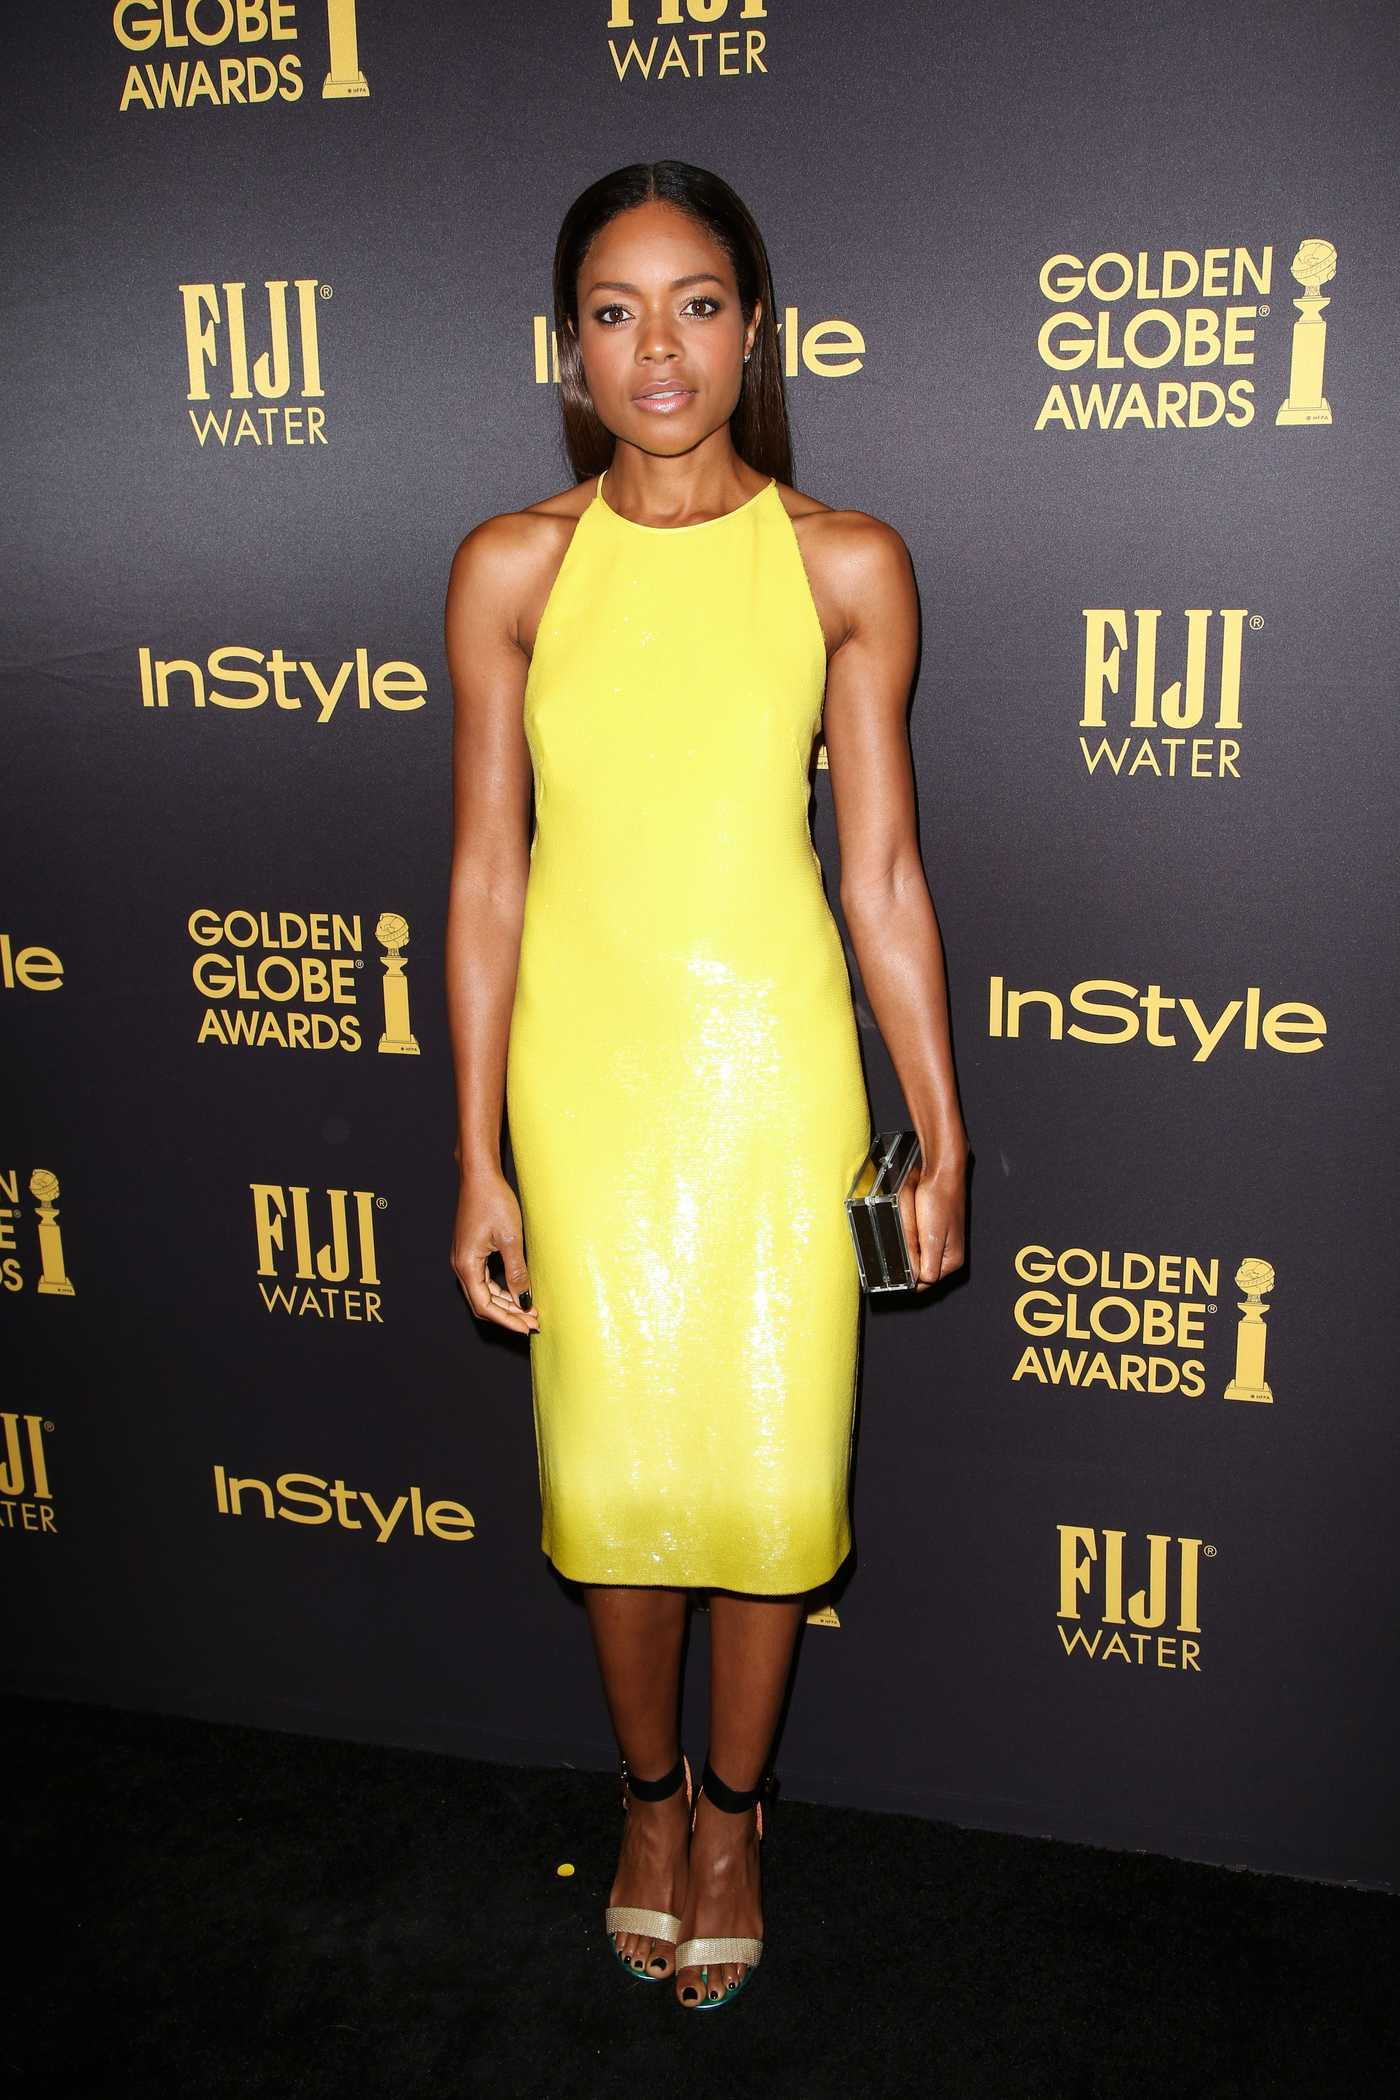 Naomie Harris at the HFPA and InStyles Celebration of the 2017 Golden Globe Awards Season in West Hollywood 11/10/2016